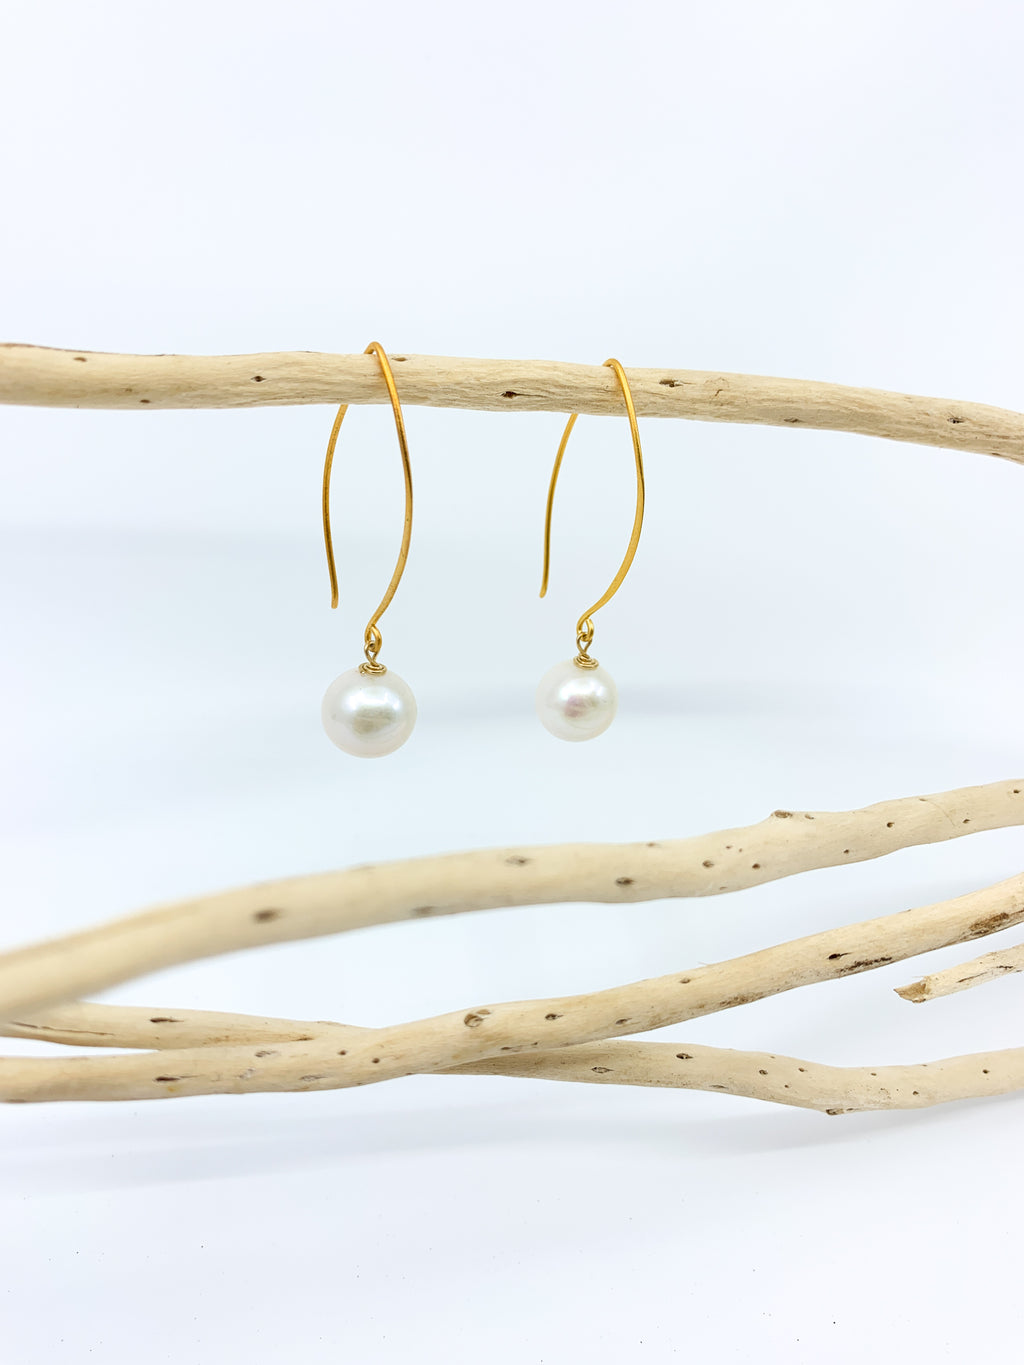 white pearl earrings with long mat gold hook by eve black jewelry made in Hawaii